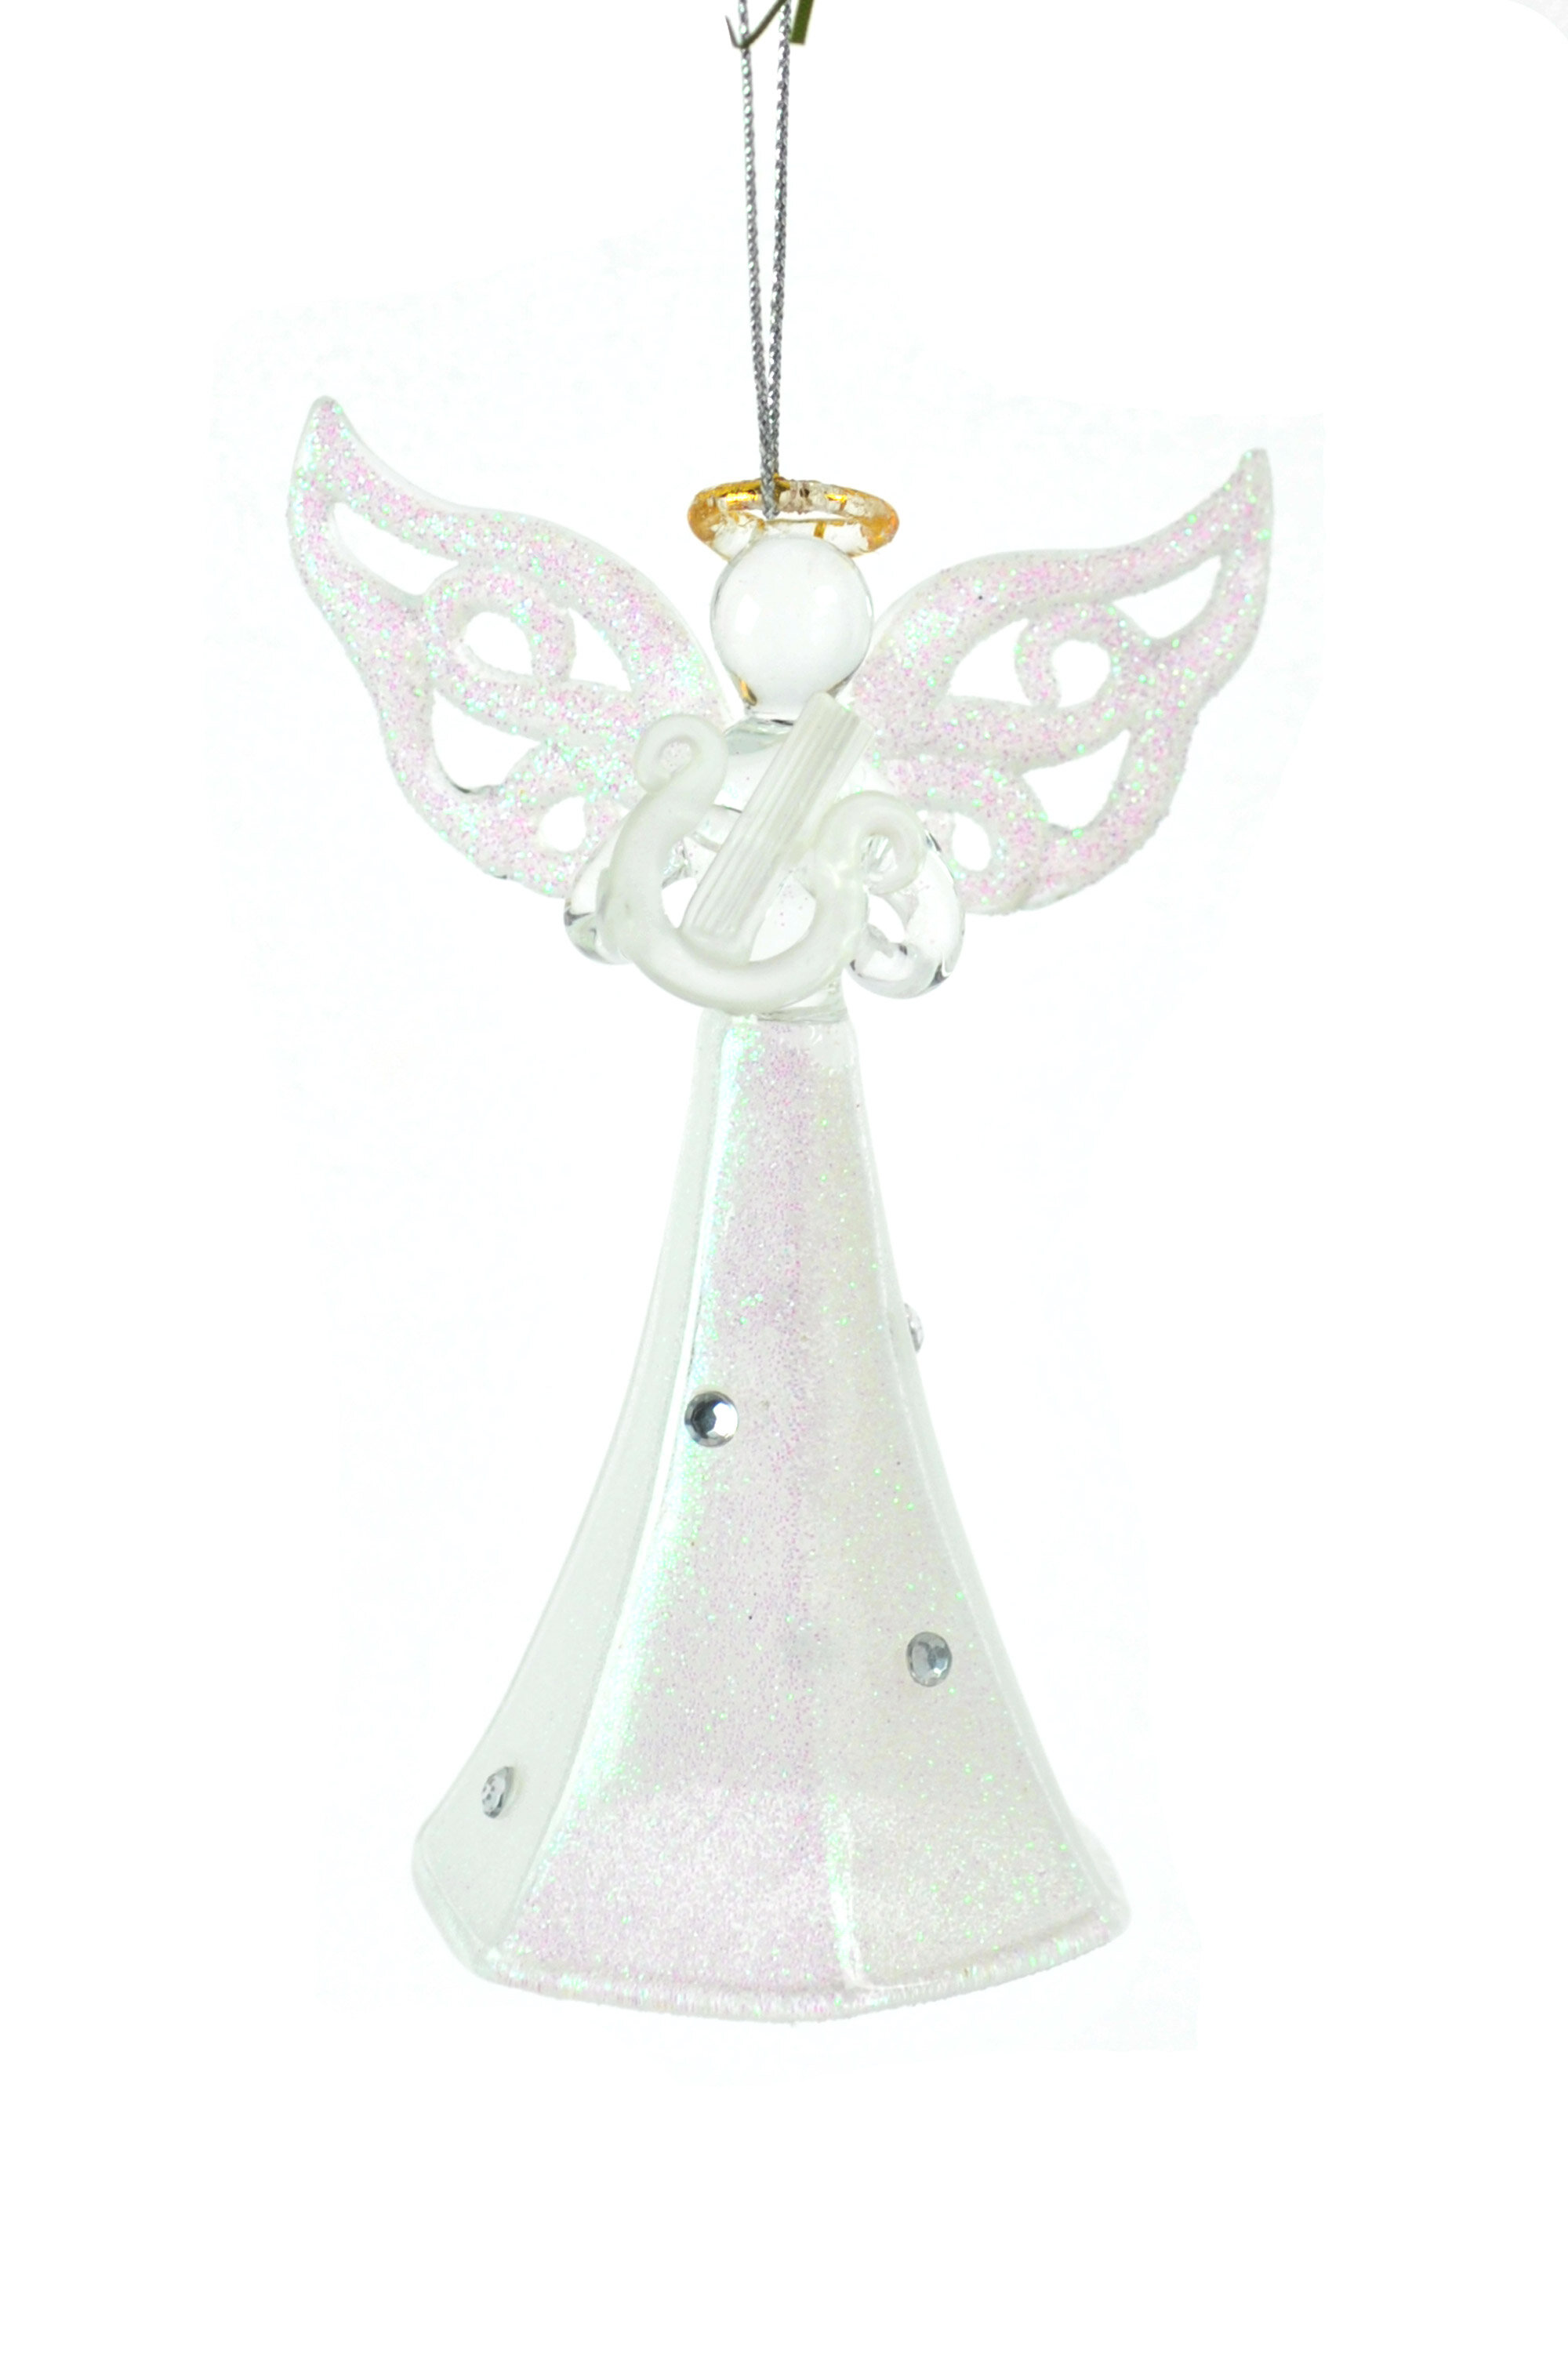 The Holiday Aisle Blown Glass White Angel Hanging Figurine Ornament Wayfair